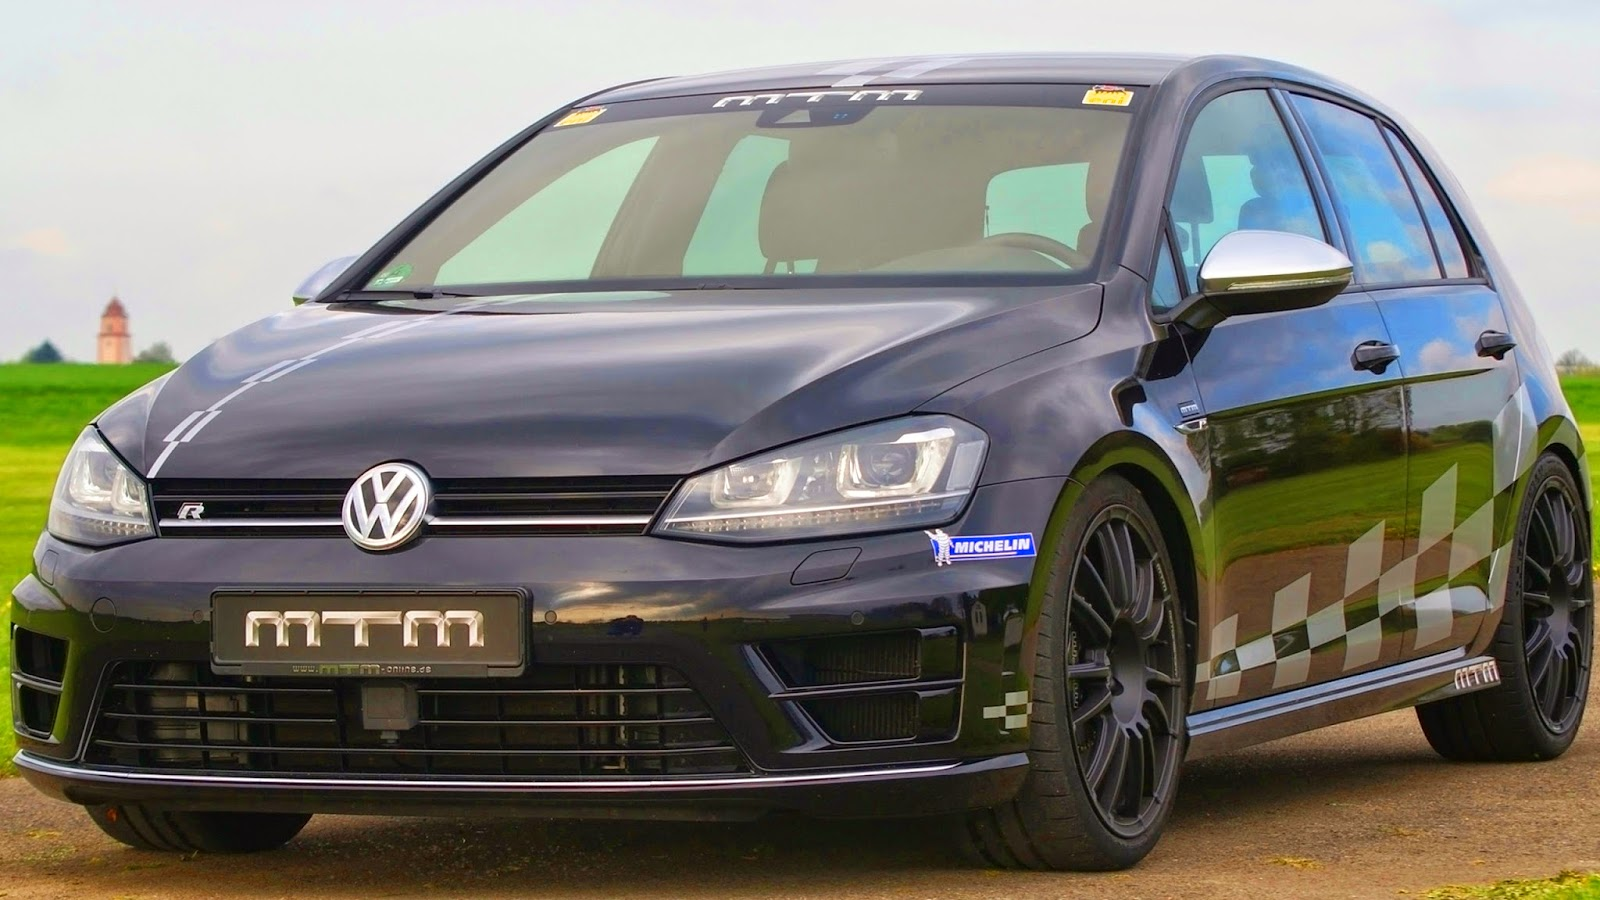 mtm volkswagen golf 7 r 2014 4motion aro 19 2 0 tsi 360 cv 46 mkgf 250 kmh carwp. Black Bedroom Furniture Sets. Home Design Ideas